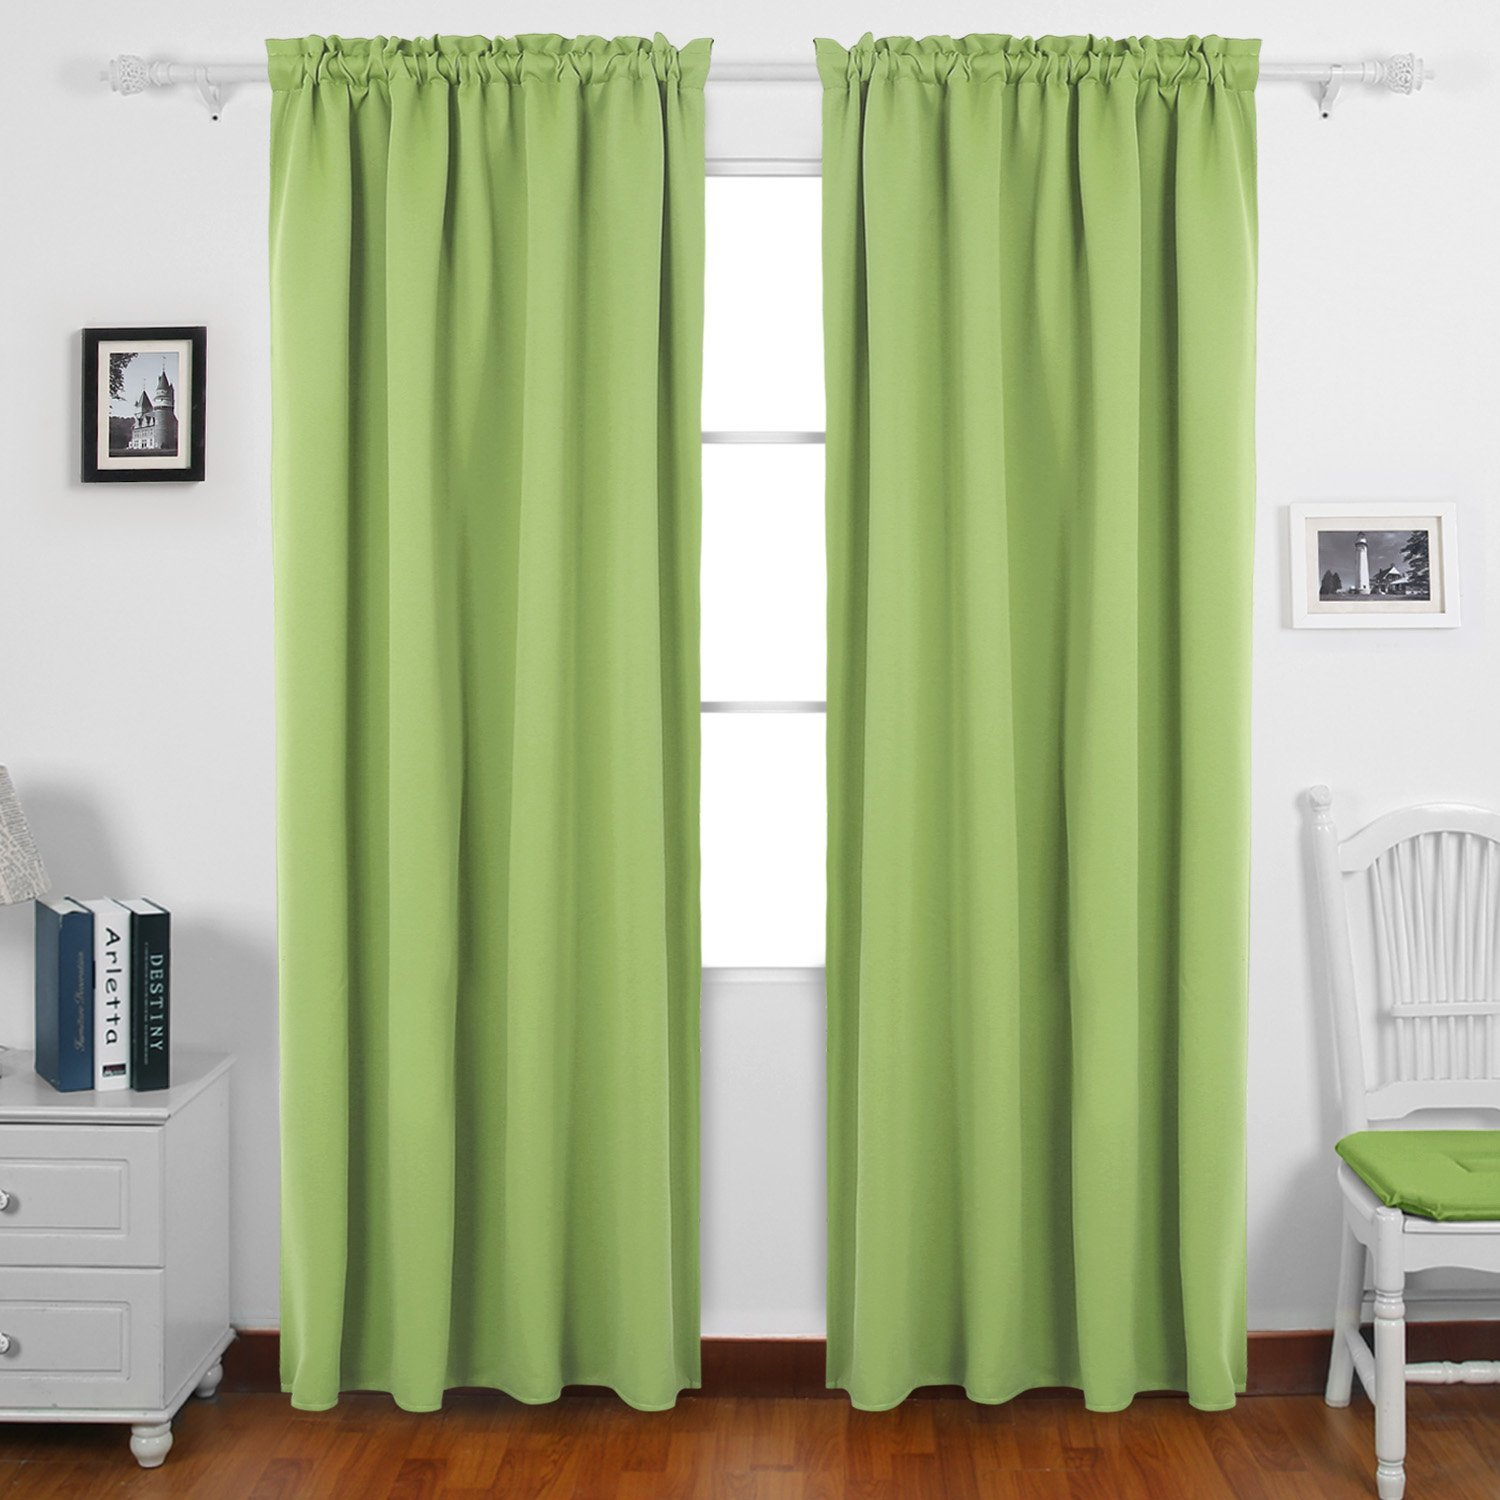 Buy Deconovo Fashionable Blackout Curtains Rod Pocket Curtains